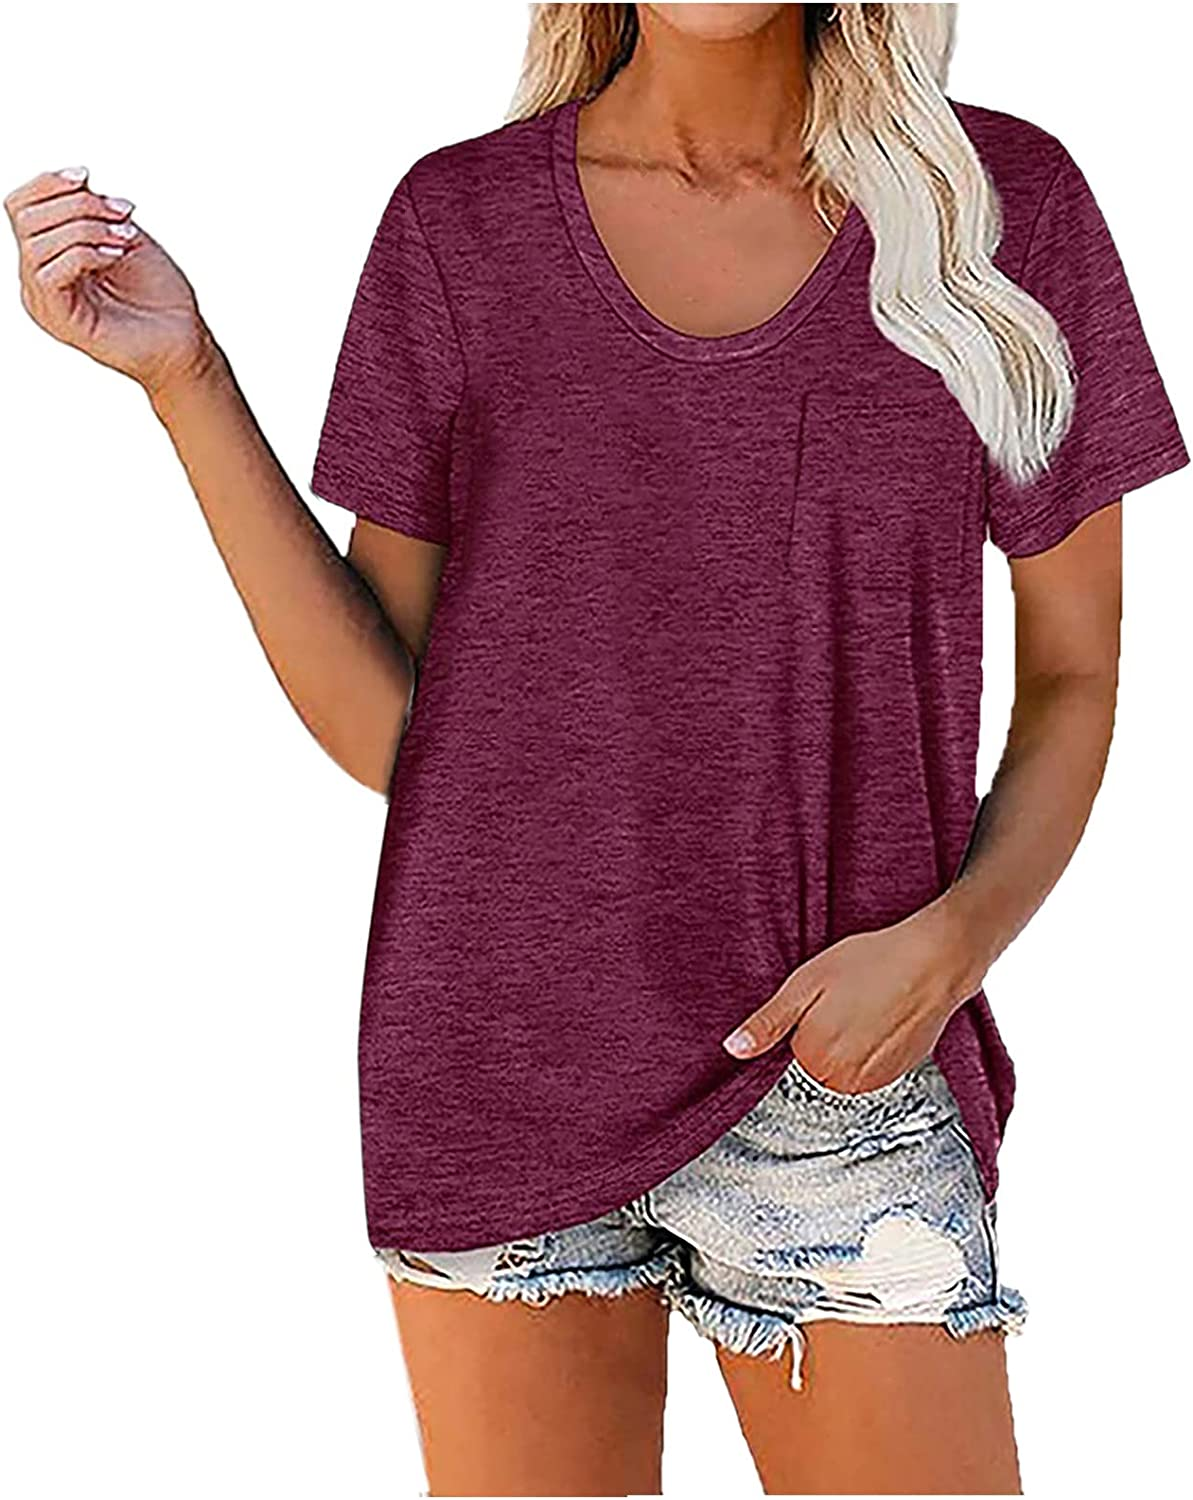 Womens overseas T Shirts Solid color Sleeve Max 84% OFF v-neck Short Te short-sleeved